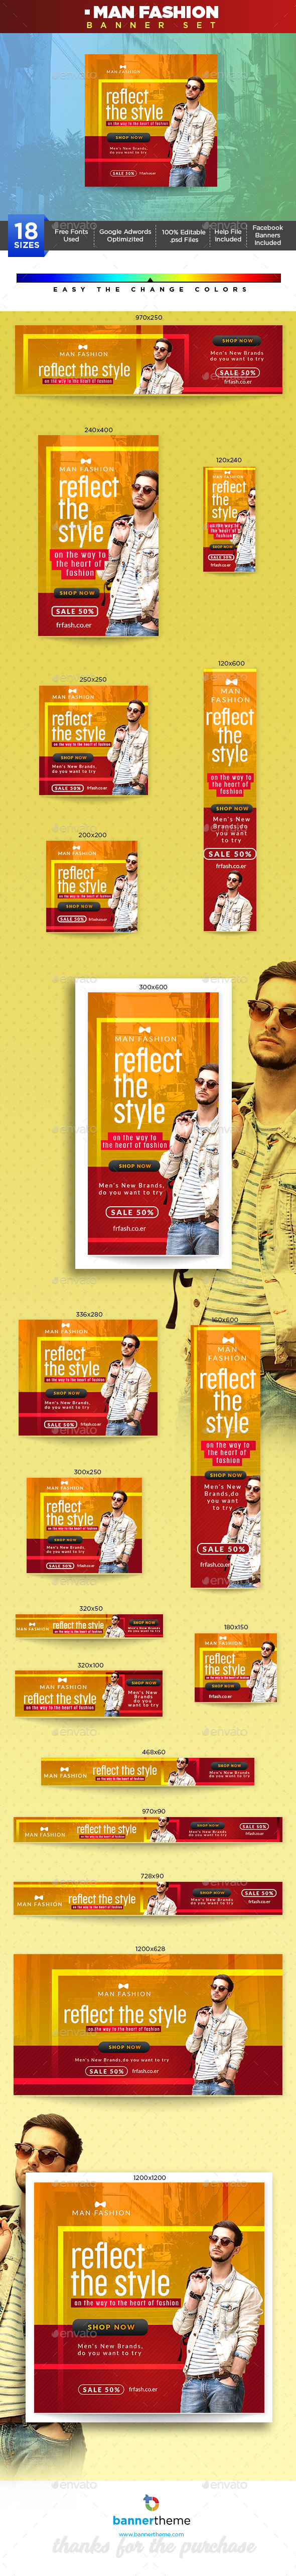 Man Fashion Banner - Banners & Ads Web Elements